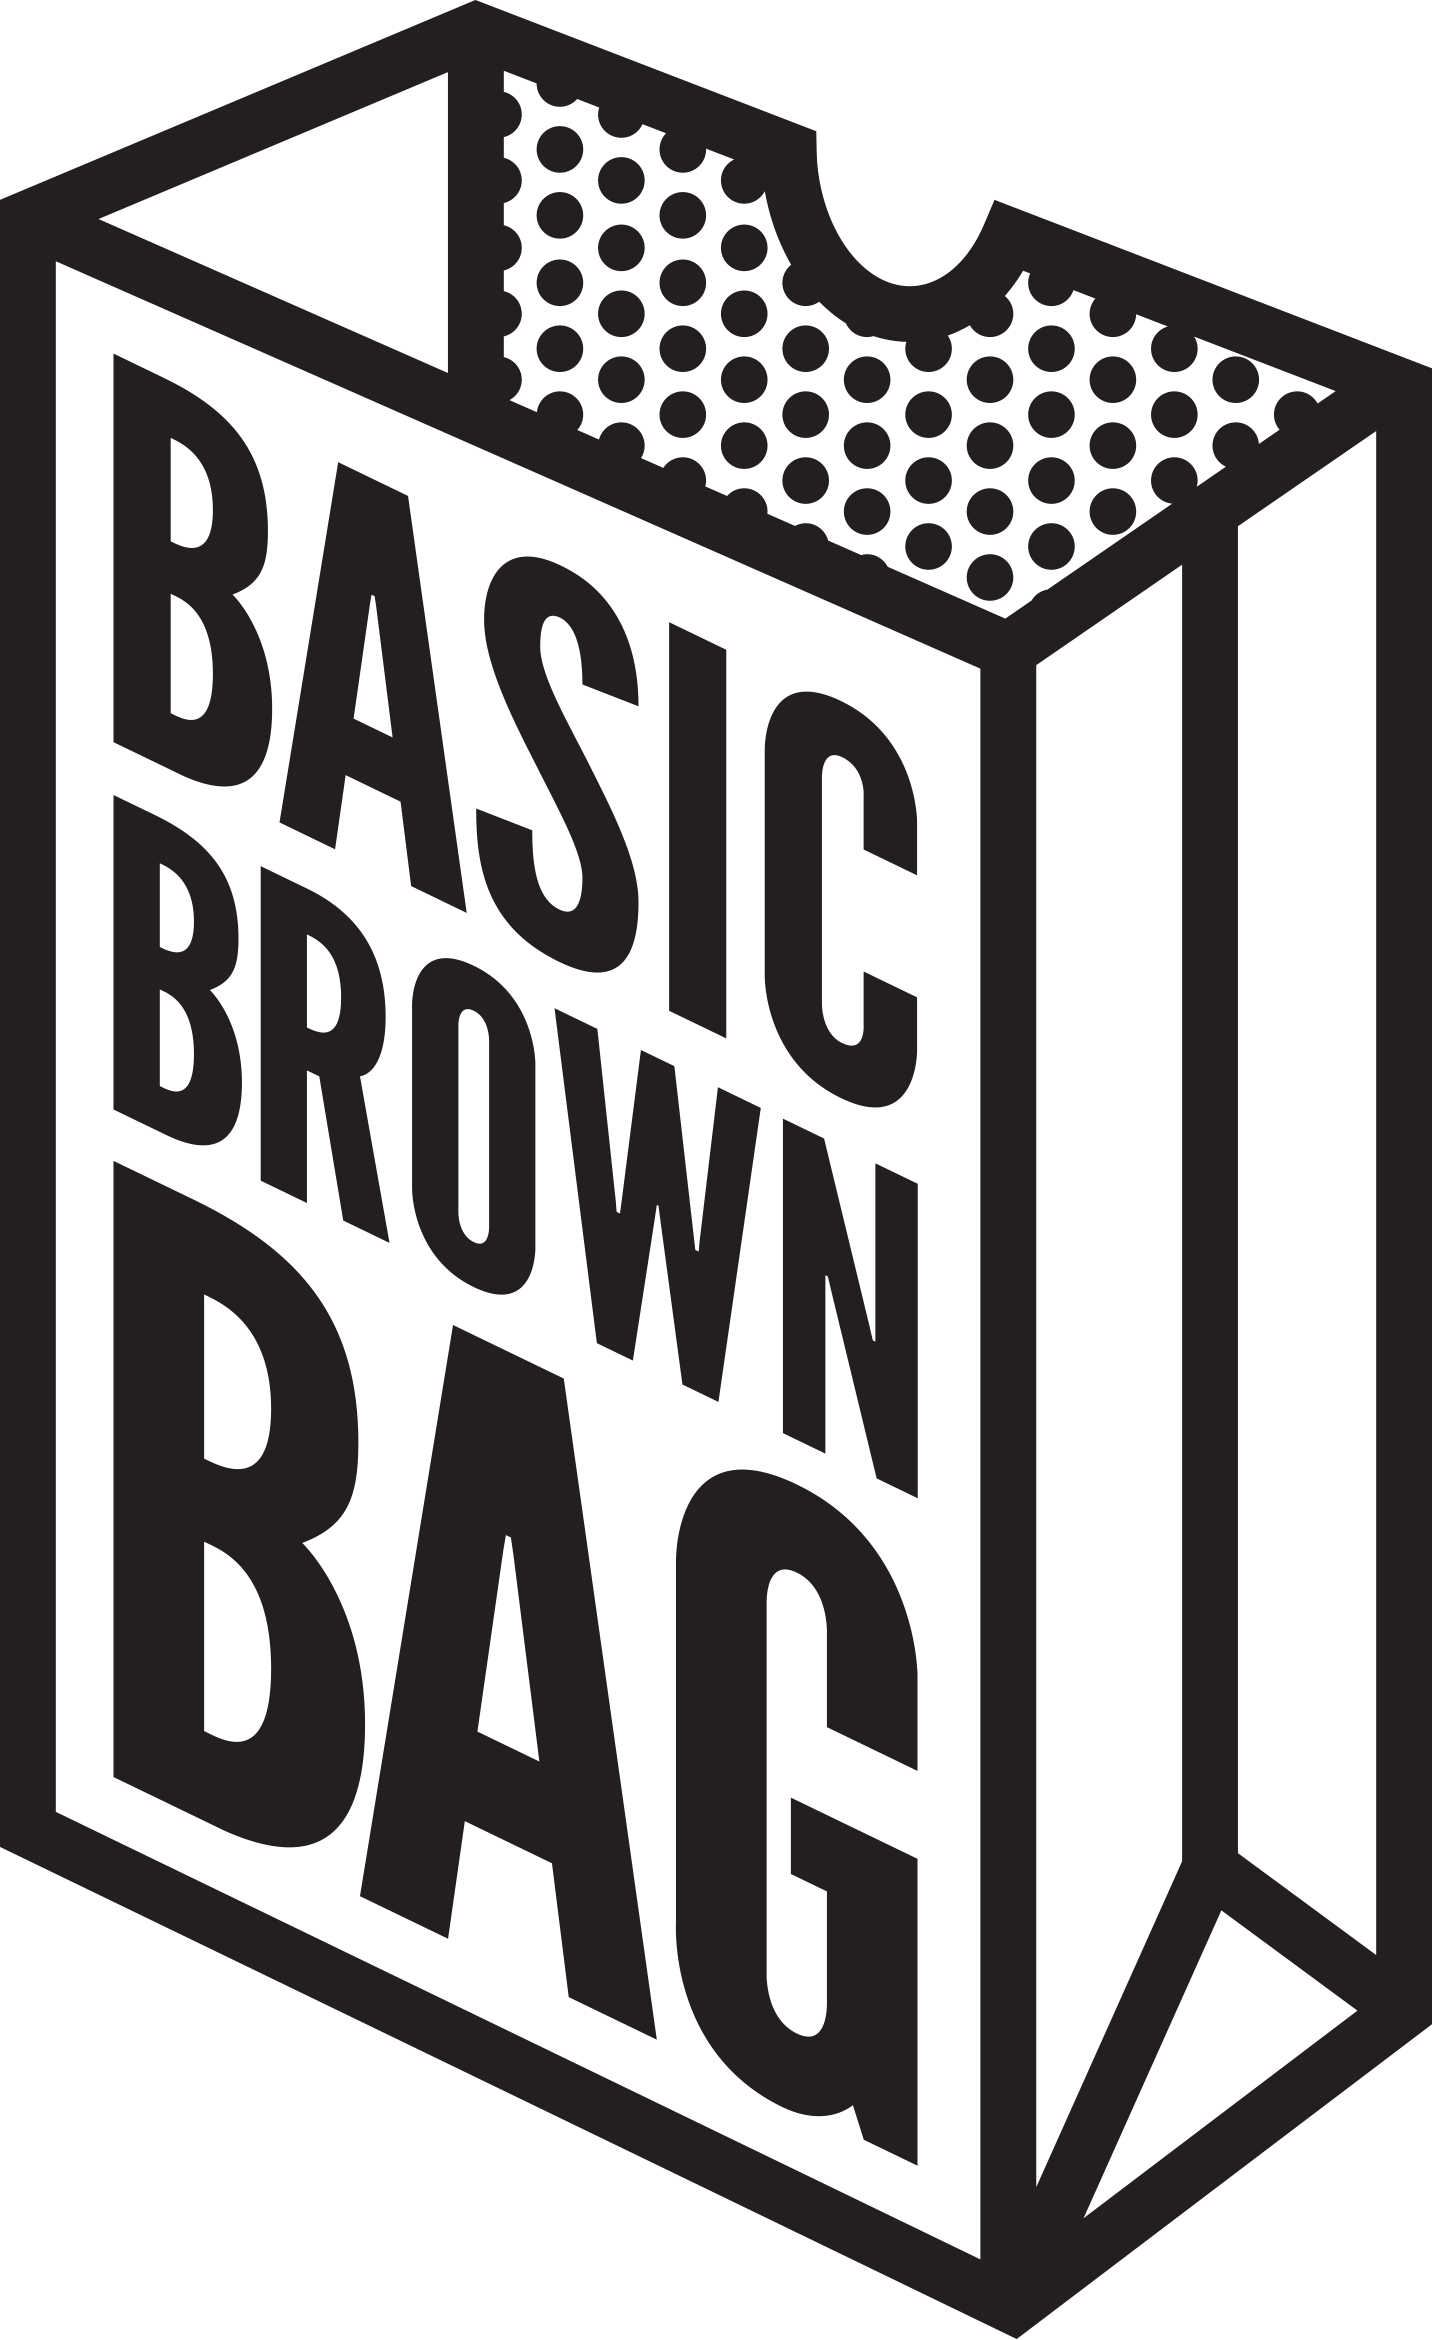 Classic Events Catering - Basic Brown Bag Logo